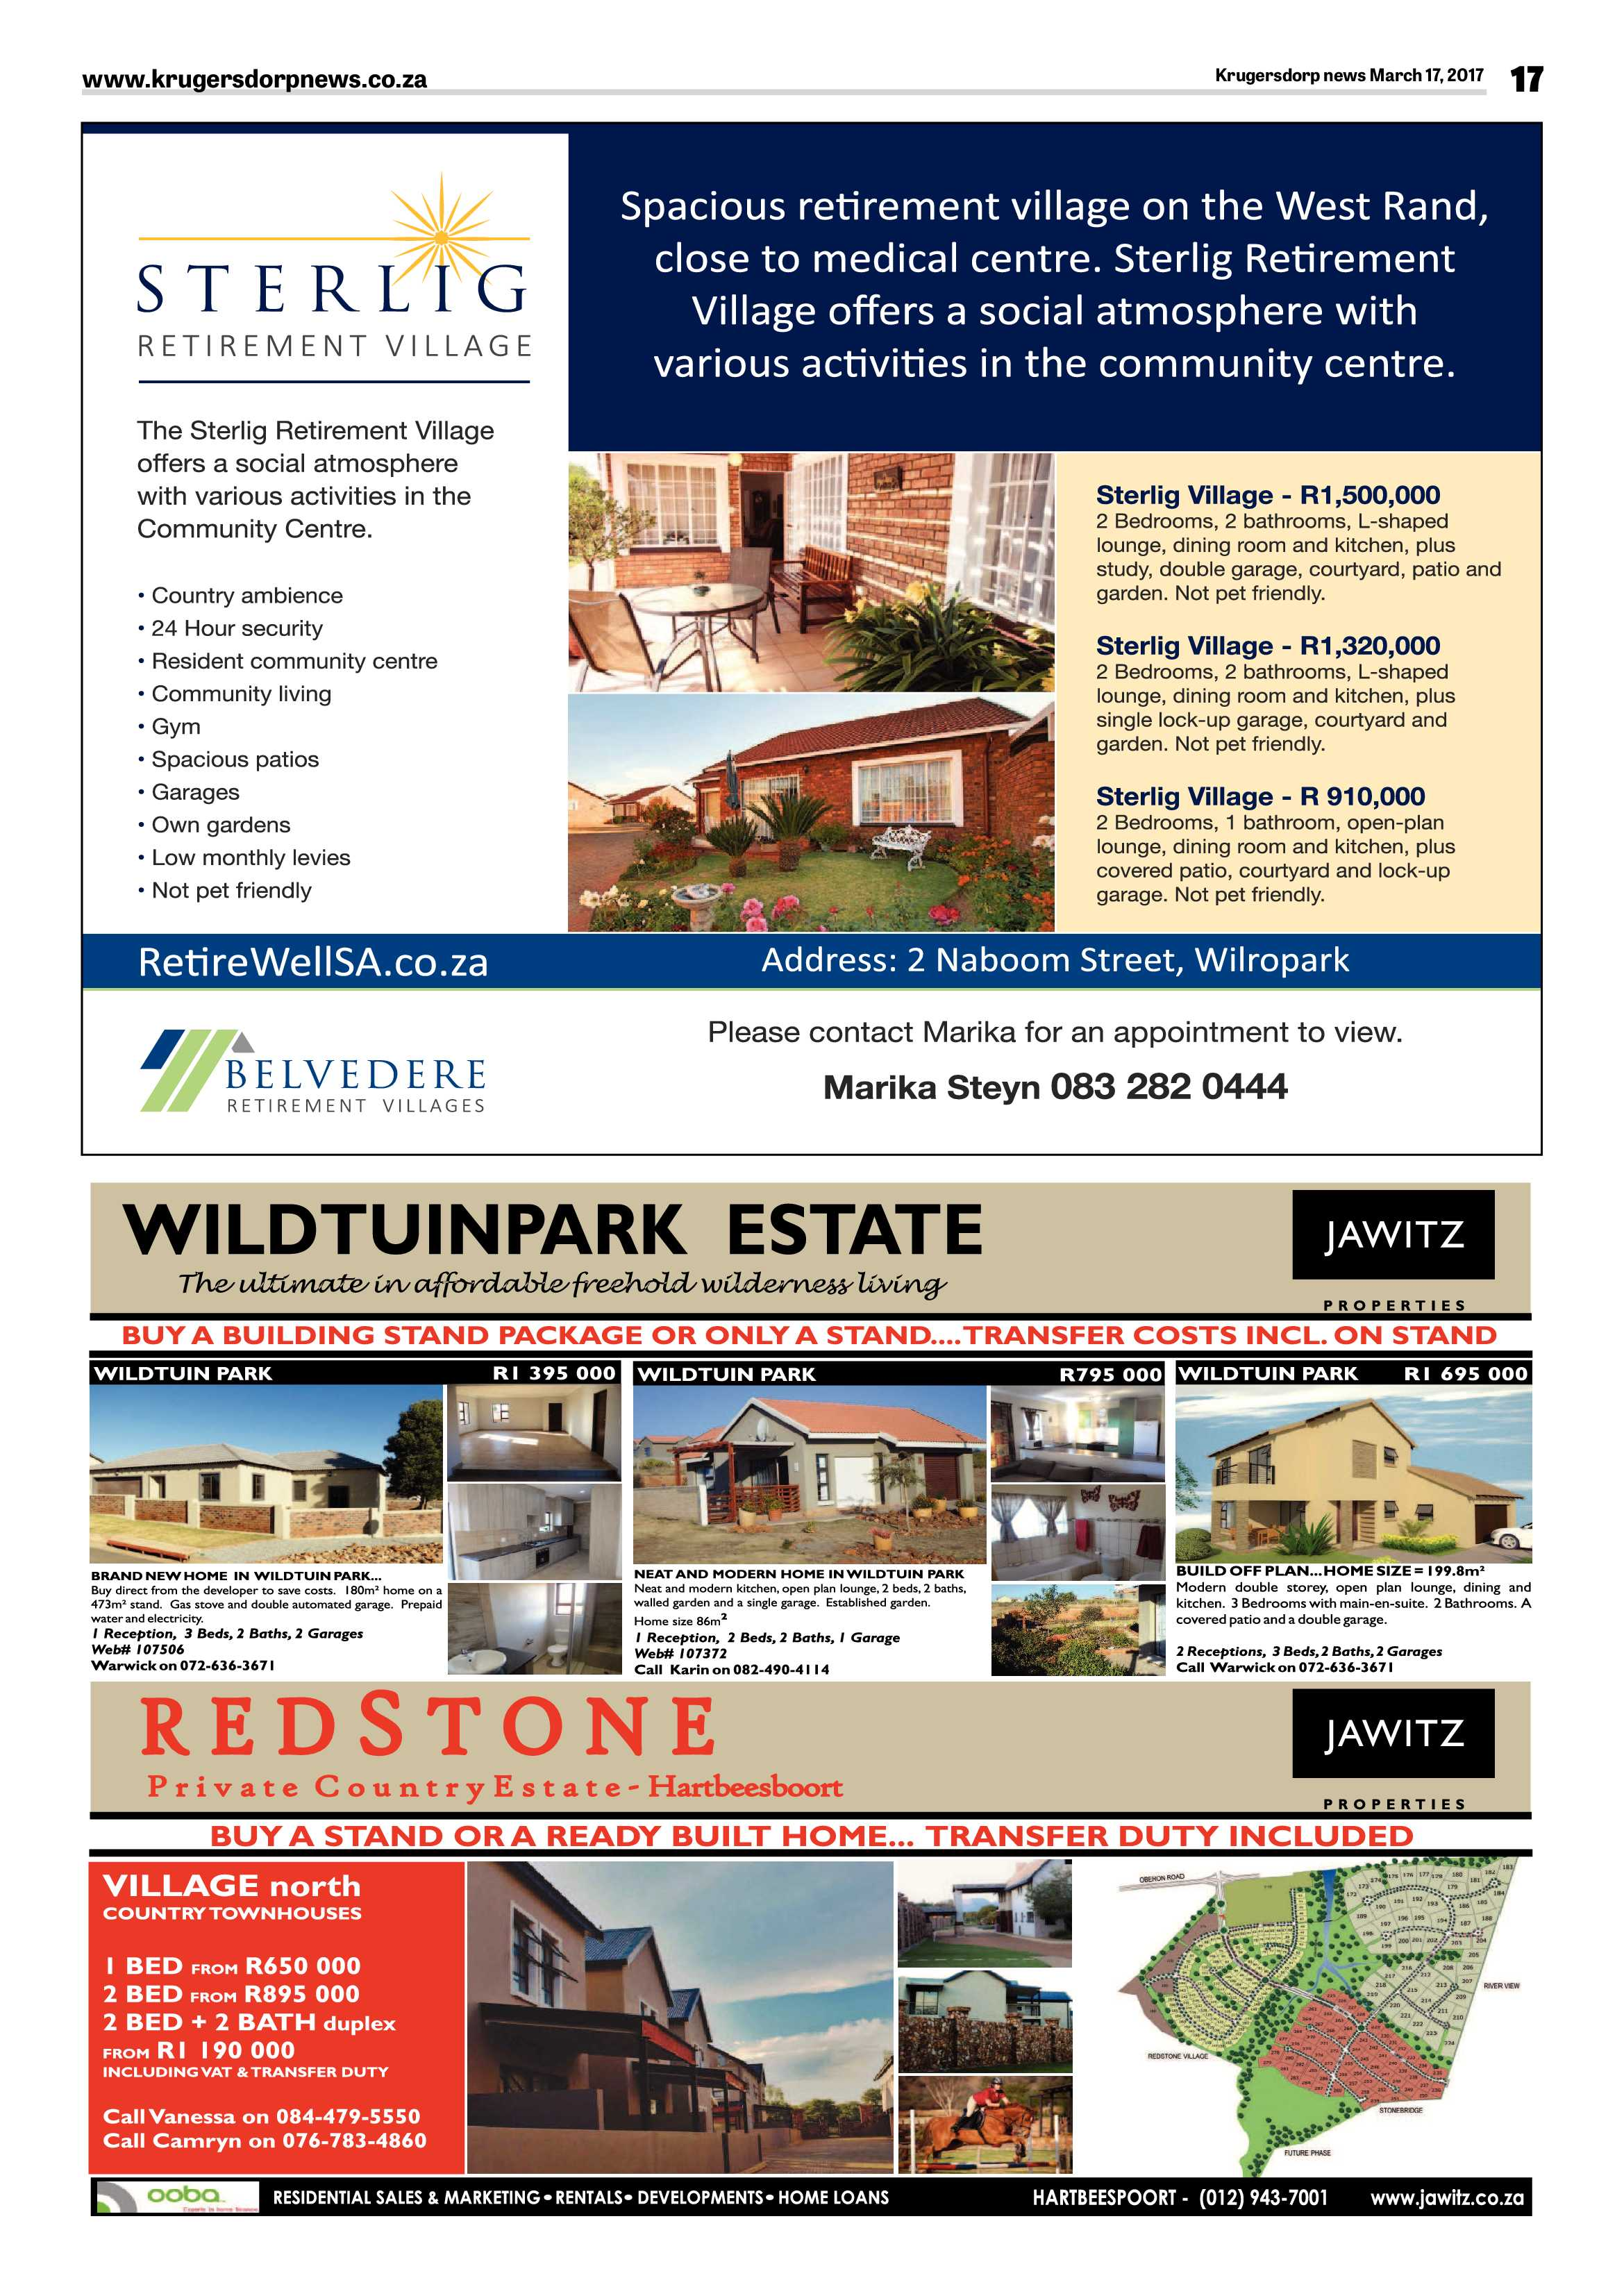 krugersdorp-news-17-march-2017-epapers-page-17